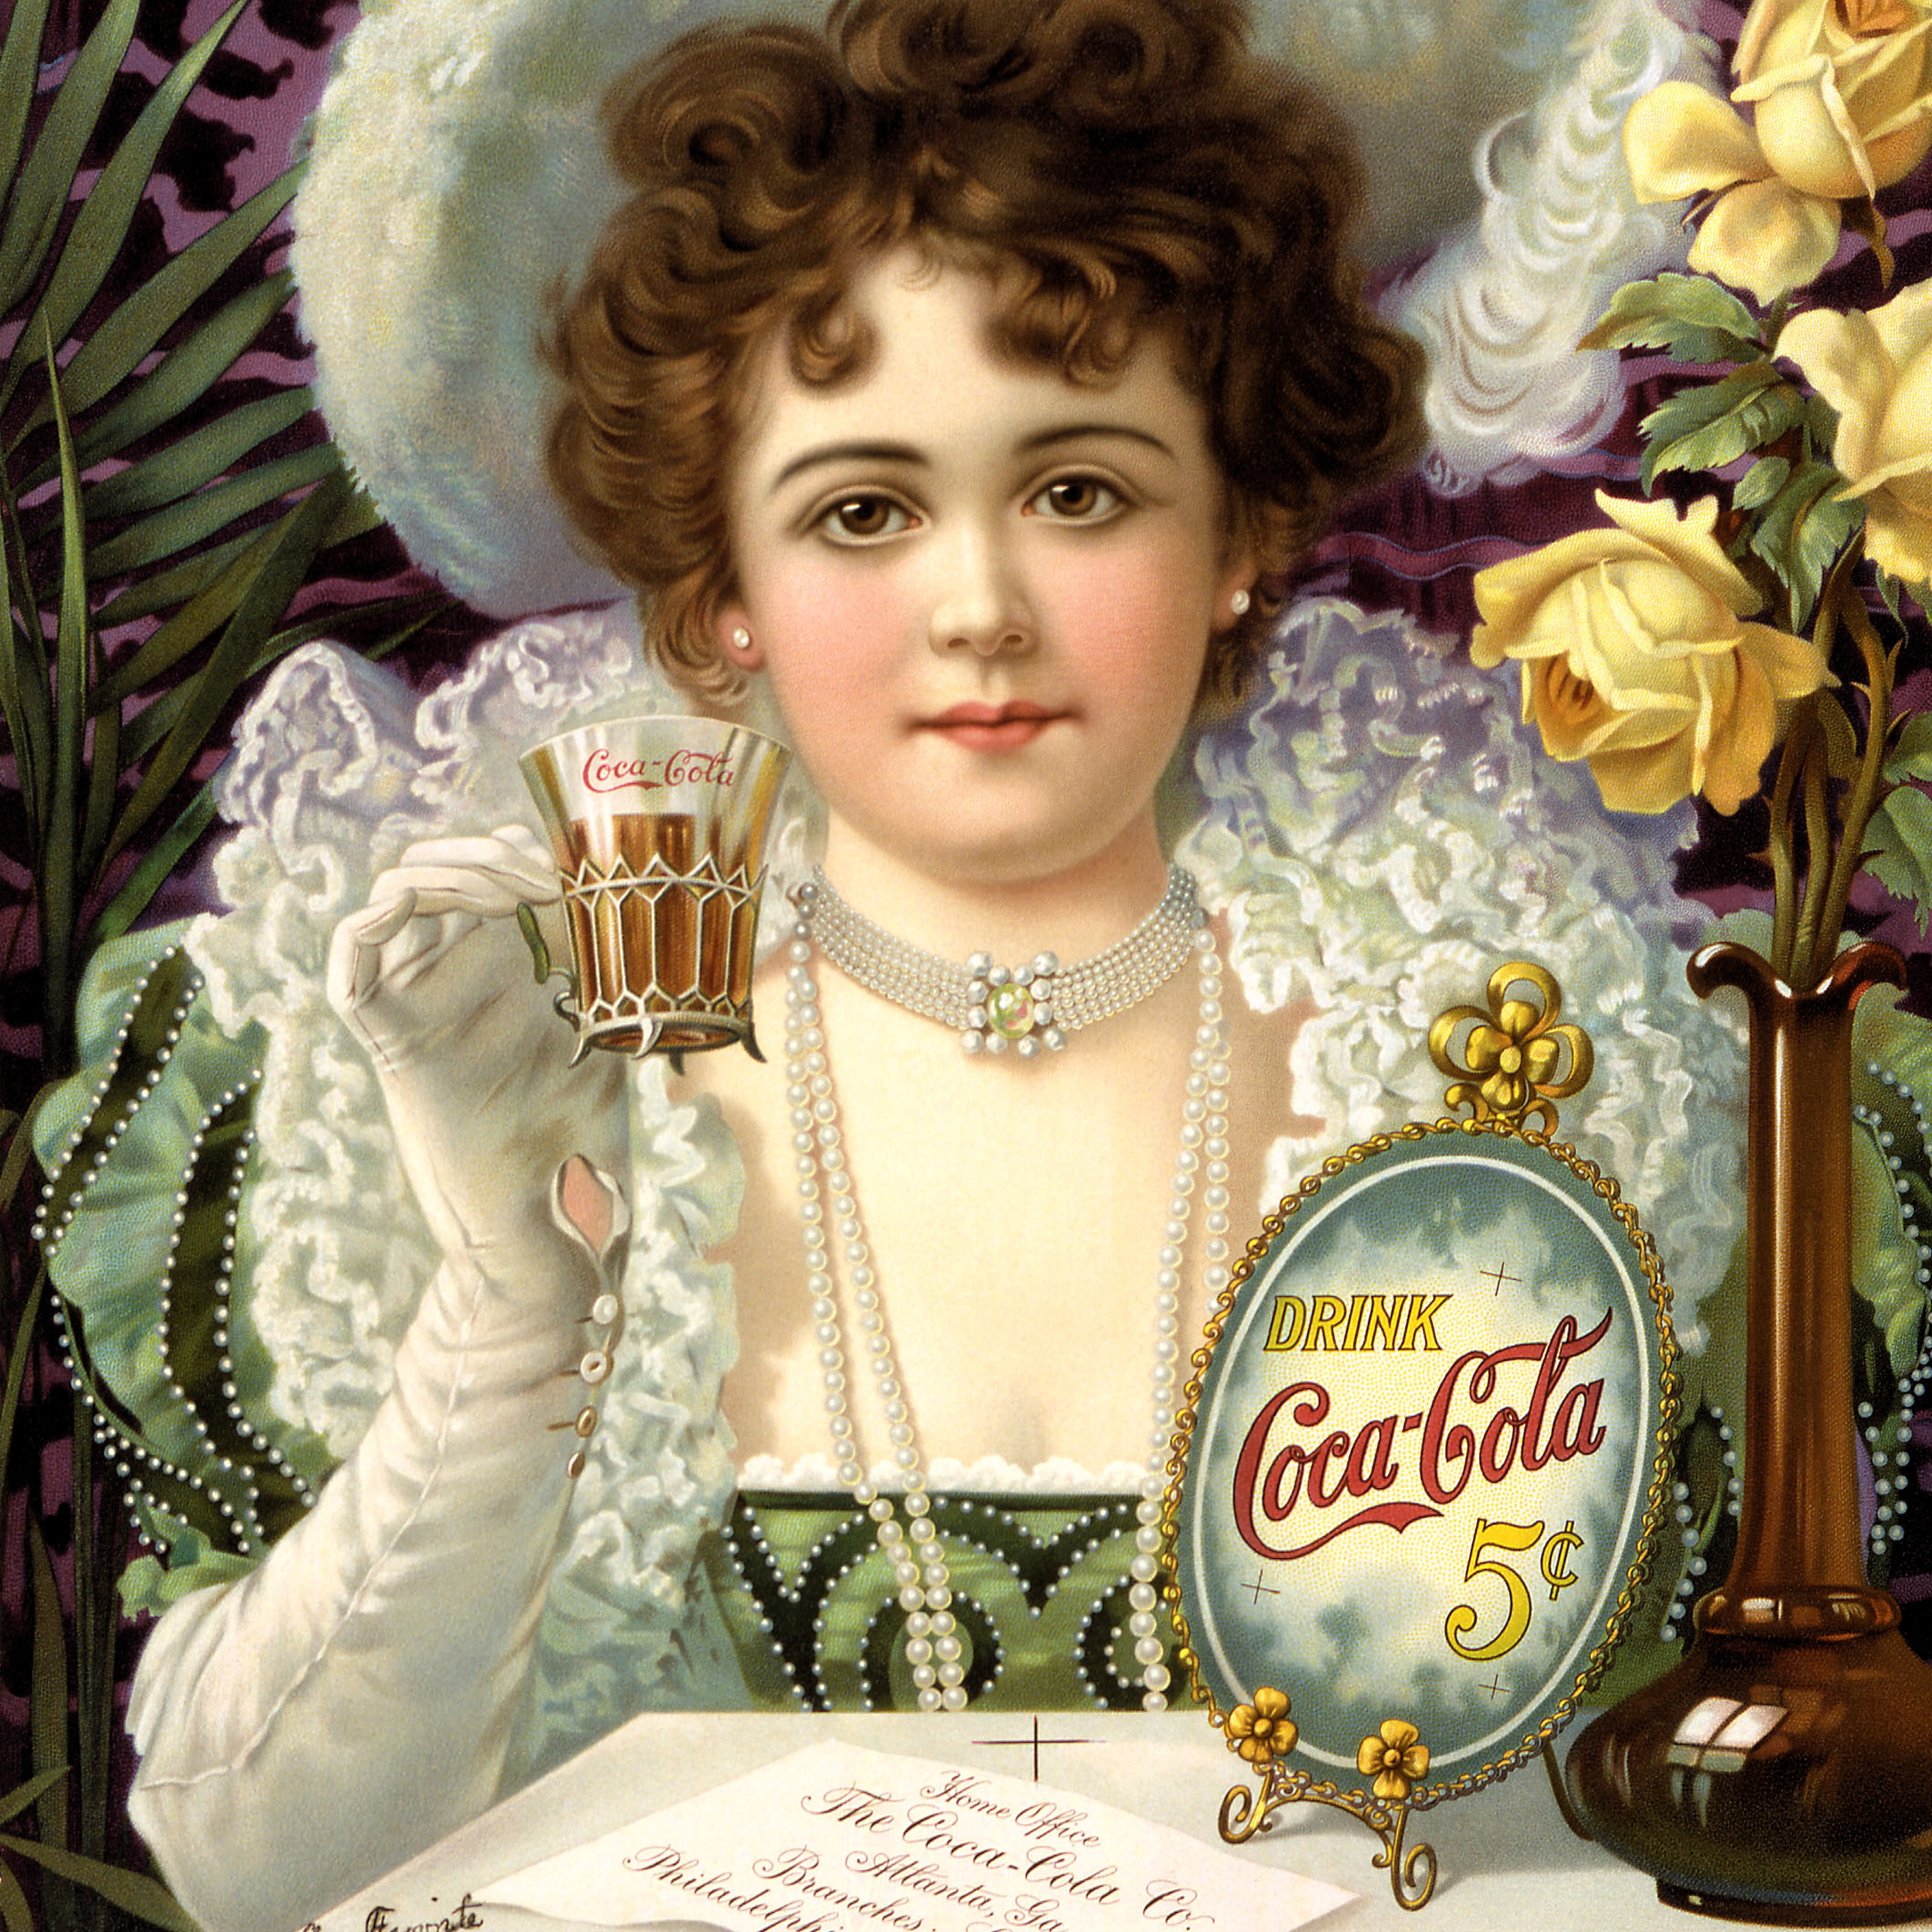 By Artist not credited.  derivative work (restoration): Victorrocha (talk) Cocacola-5cents-1900.jpg: ' [Public domain], via Wikimedia Commons